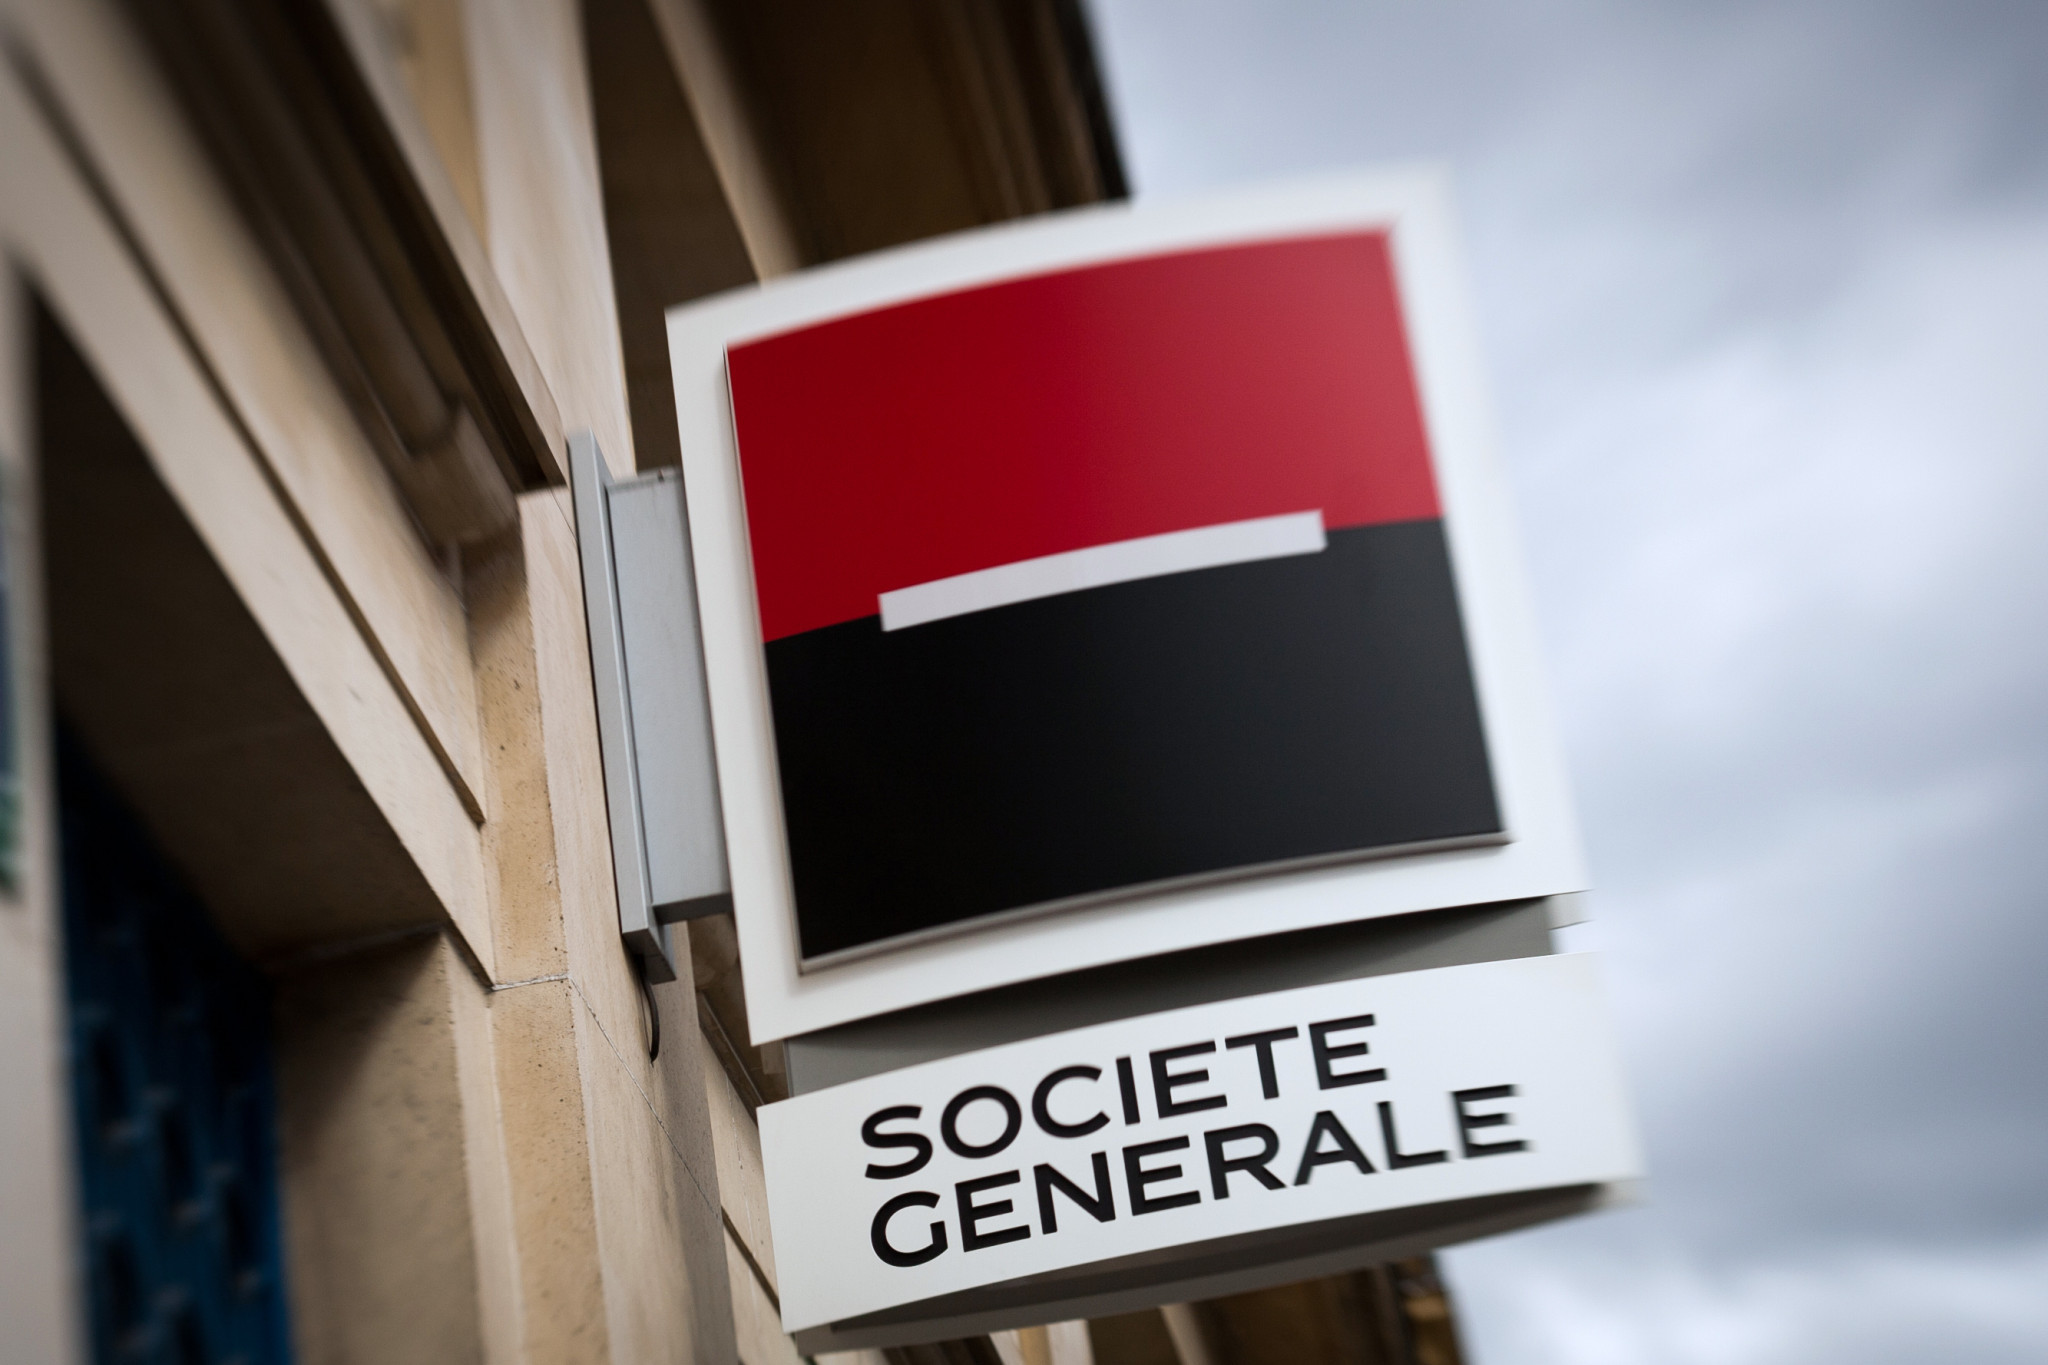 French banking group Société Générale defends anti-corruption practices amid links to Rio 2016 vote-buying scandal